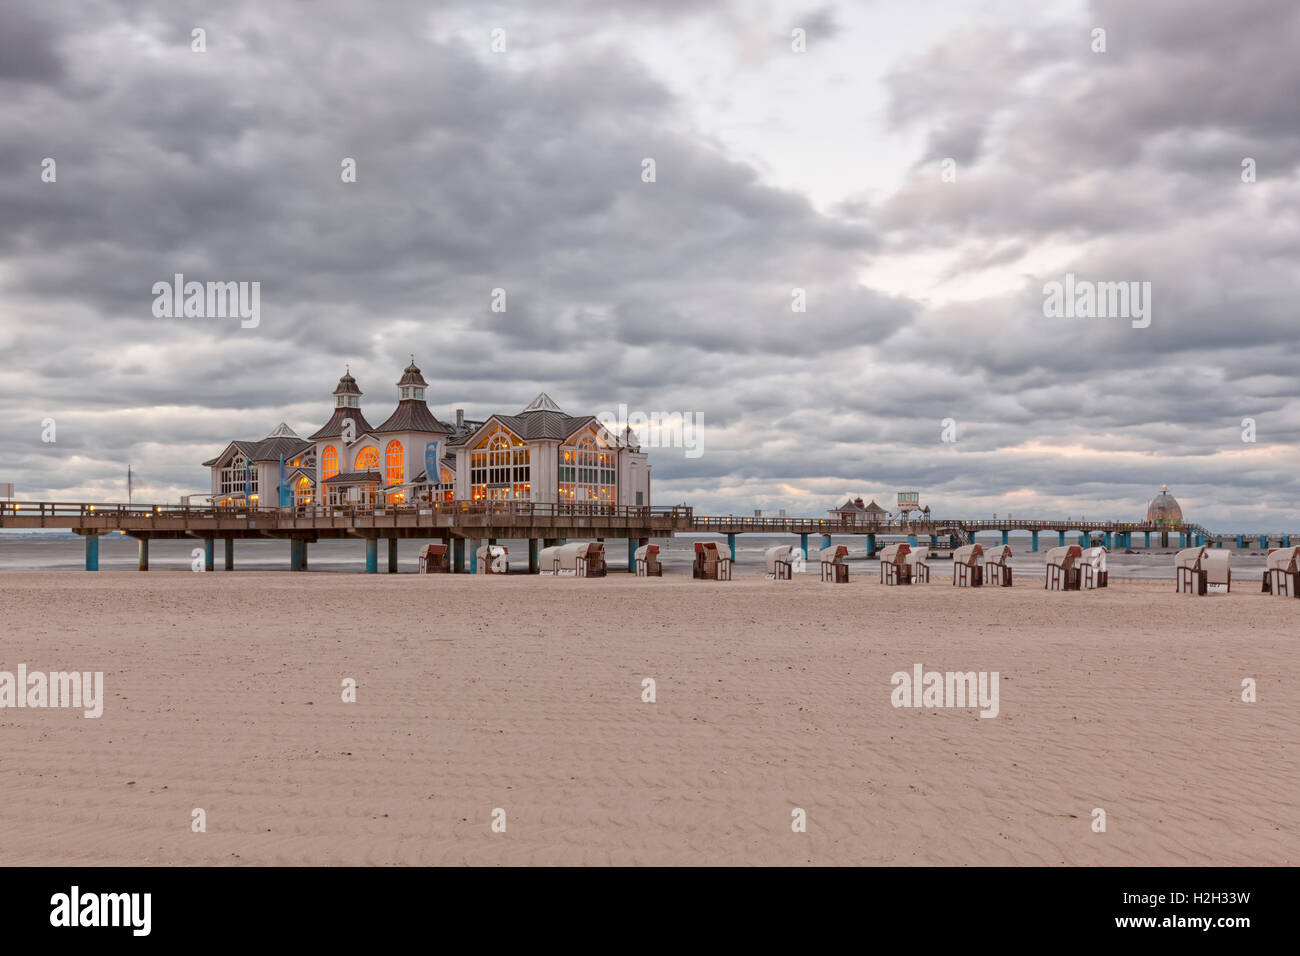 Beach and historic pier at Ostseebad Sellin, Ruegen, Germany, at dusk - Stock Image